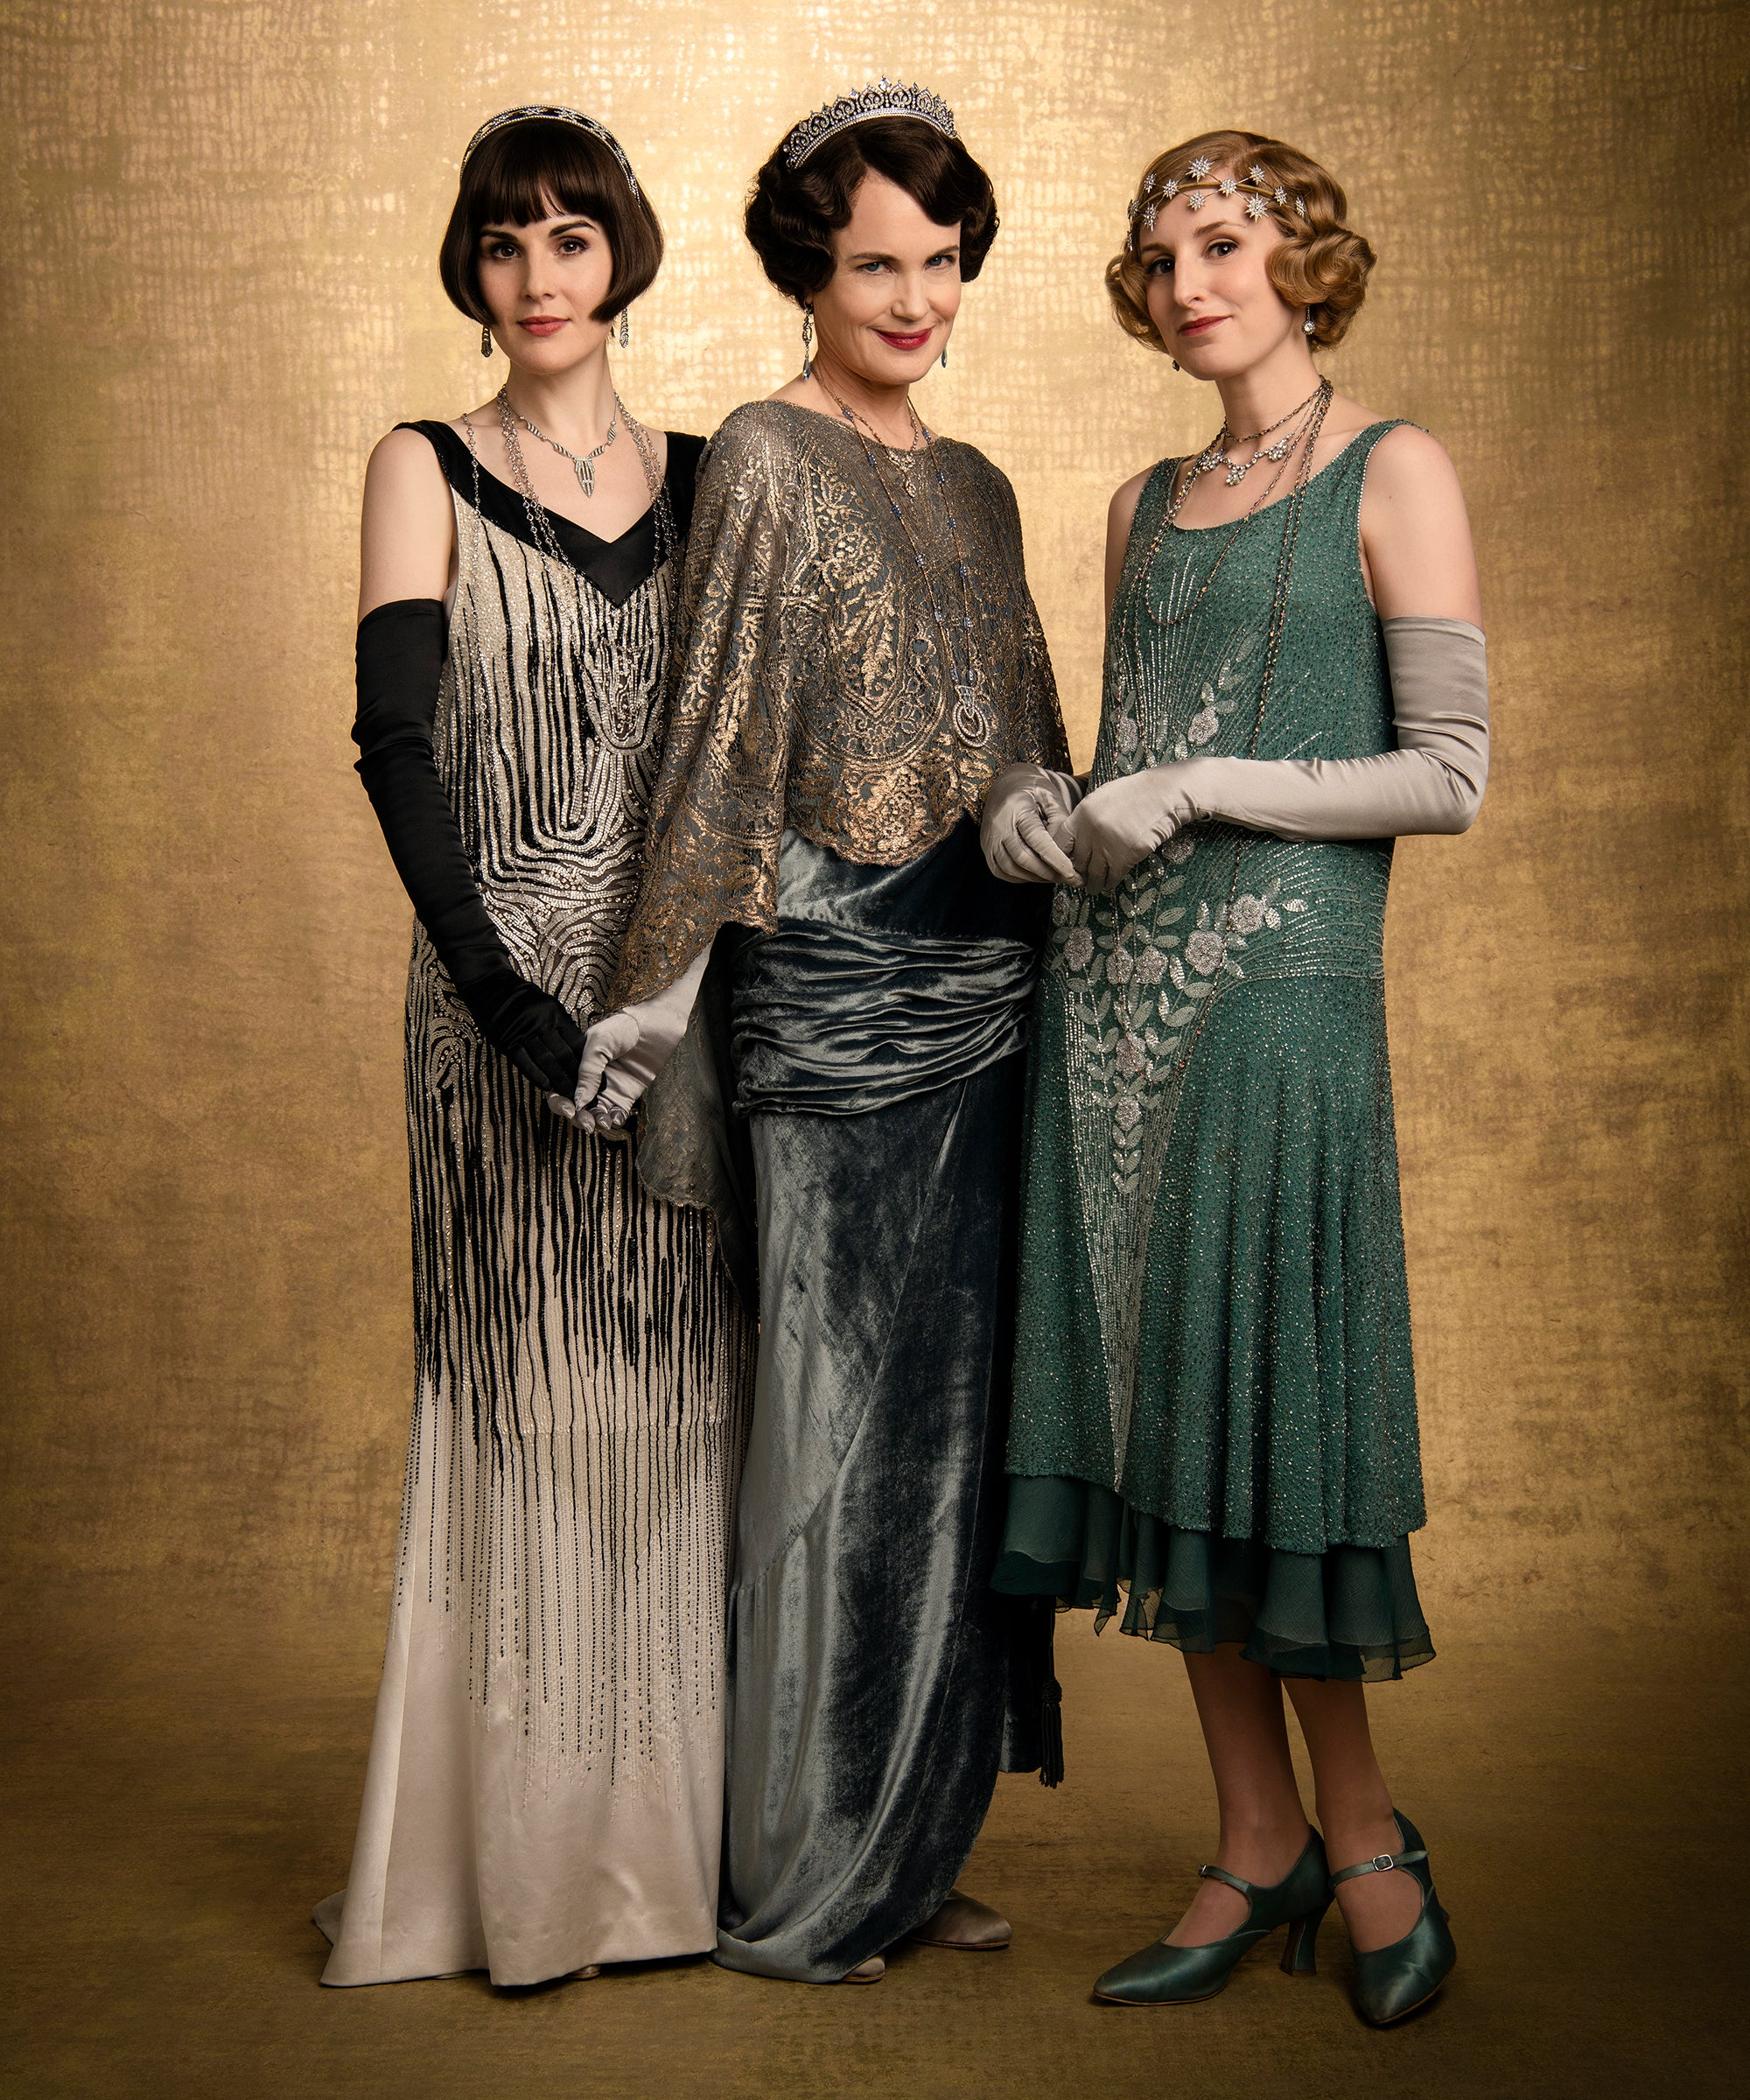 A Downton Abbey Halloween Costume For Every Mood